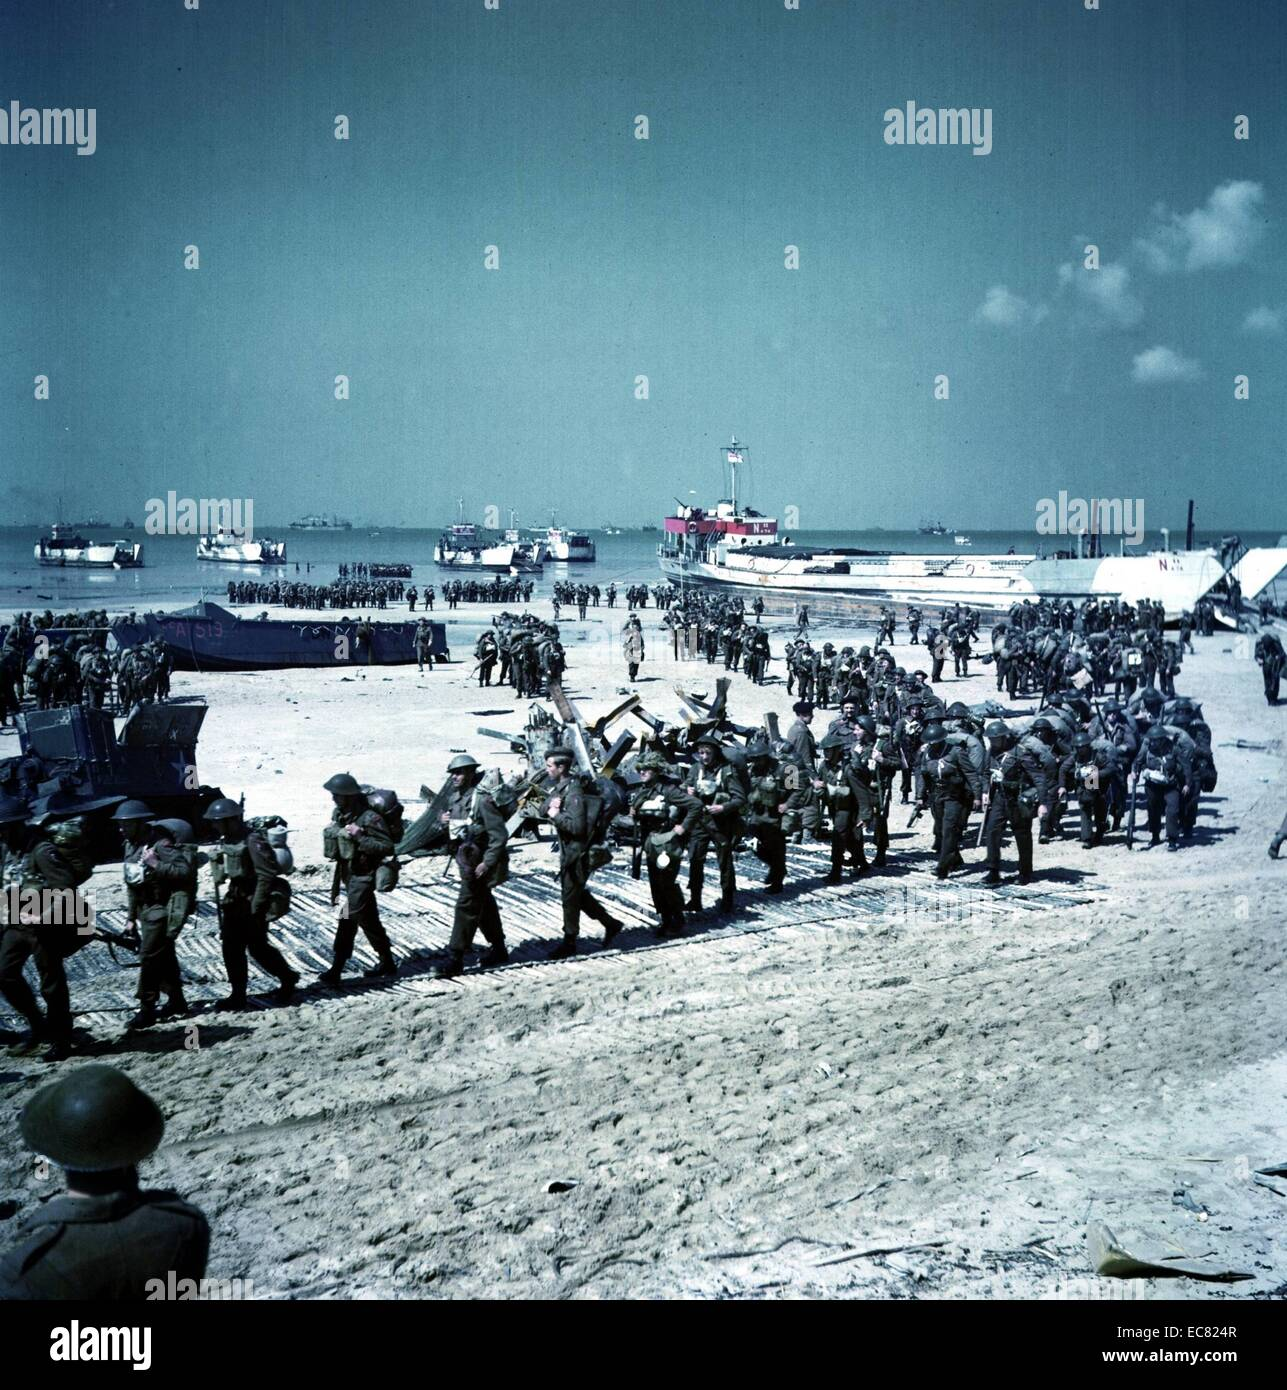 Canadian soldiers being deployed on Juno Beach, Normandy. This image was taken after the initial D-Day landings. - Stock Image